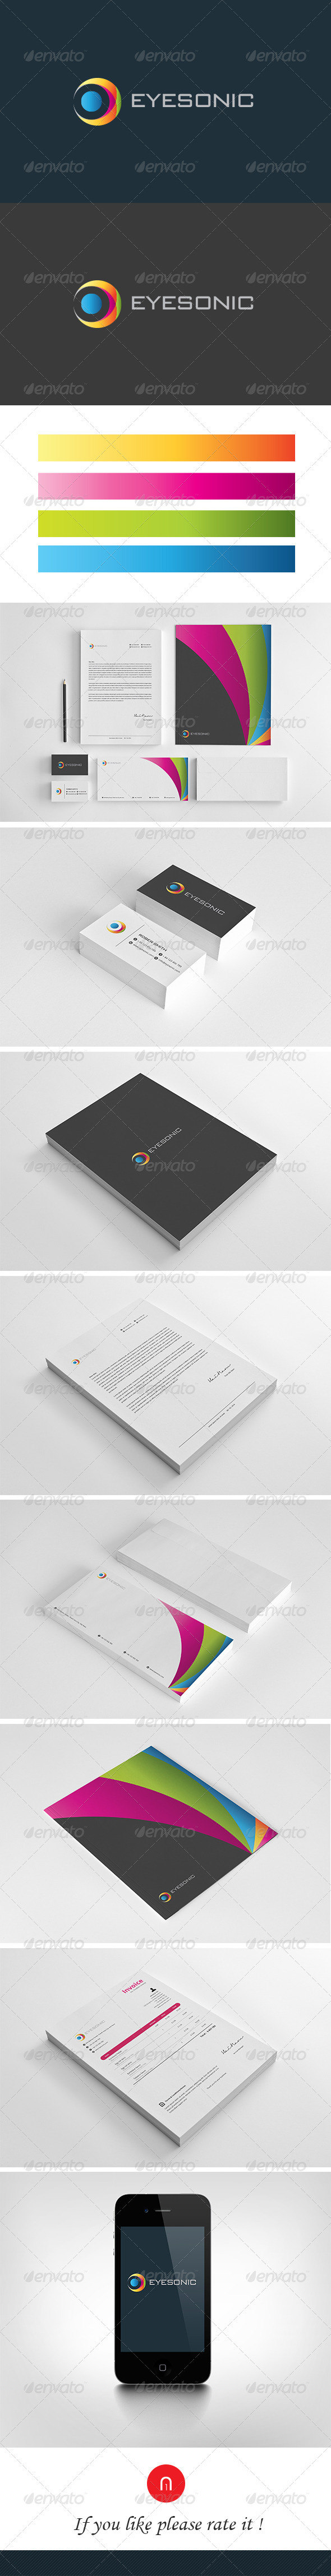 GraphicRiver Stationary & Brand Identity Eyesonic 3948467